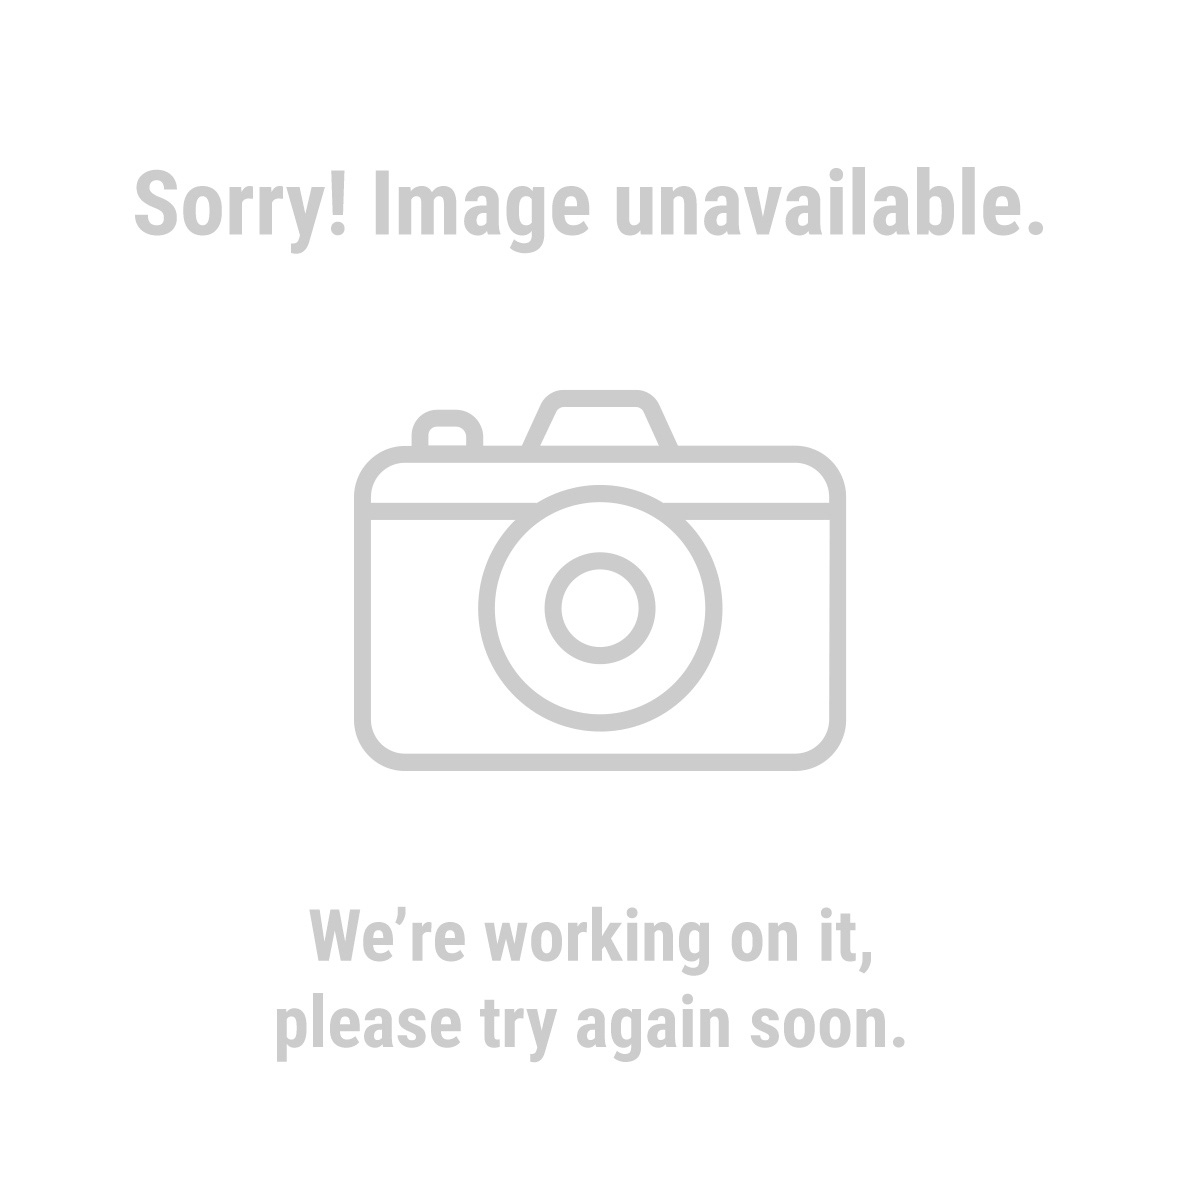 13 In 16 Speed Drill Press